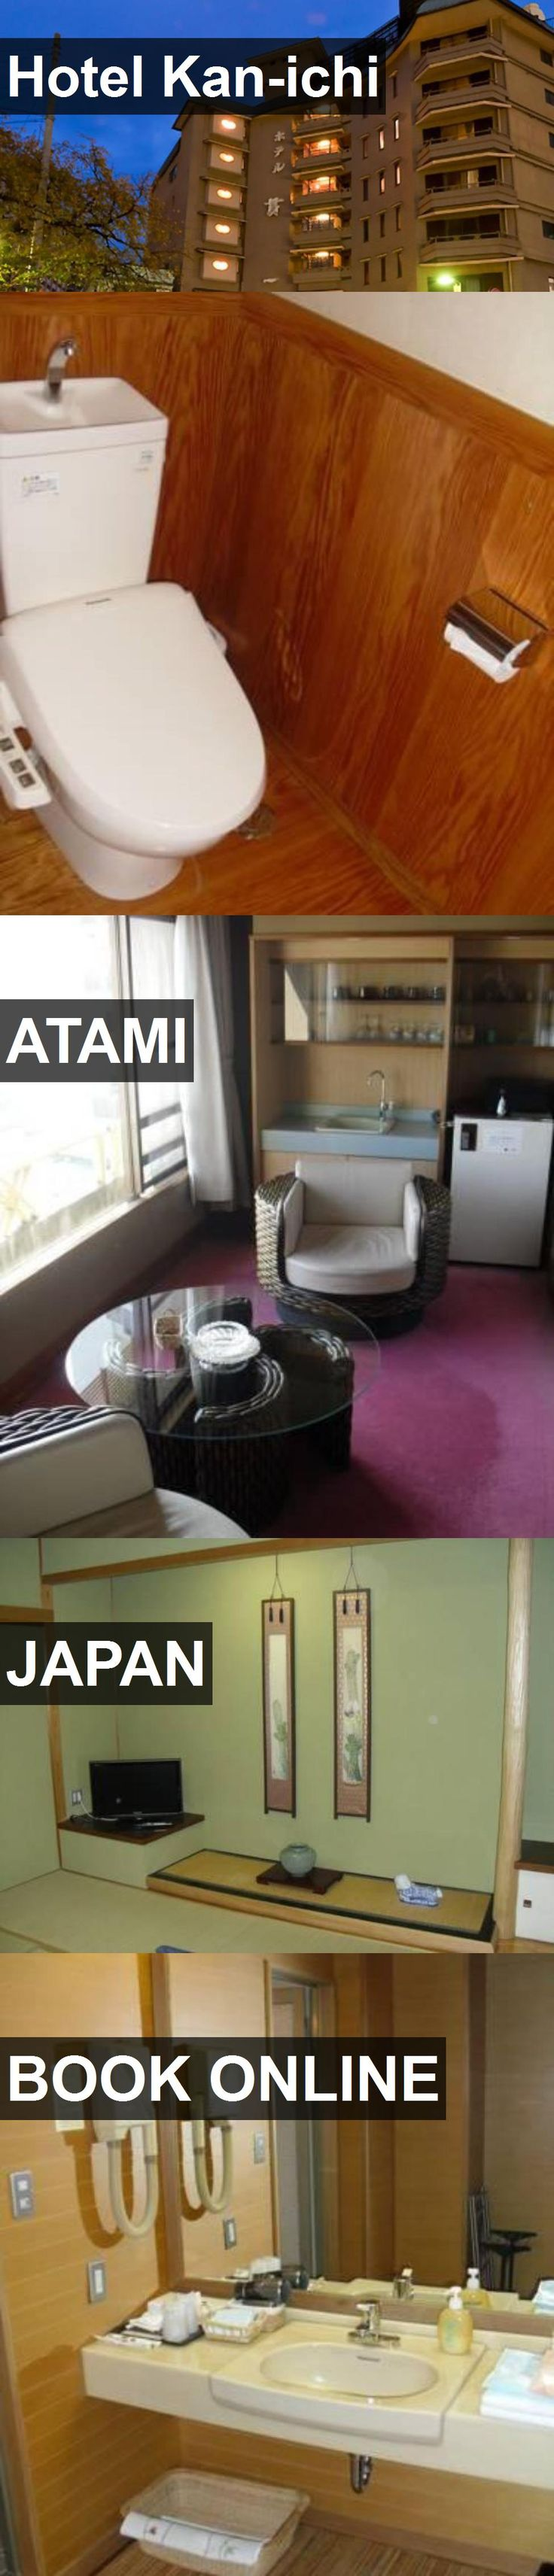 Hotel Kan-ichi in Atami, Japan. For more information, photos, reviews and best prices please follow the link. #Japan #Atami #travel #vacation #hotel